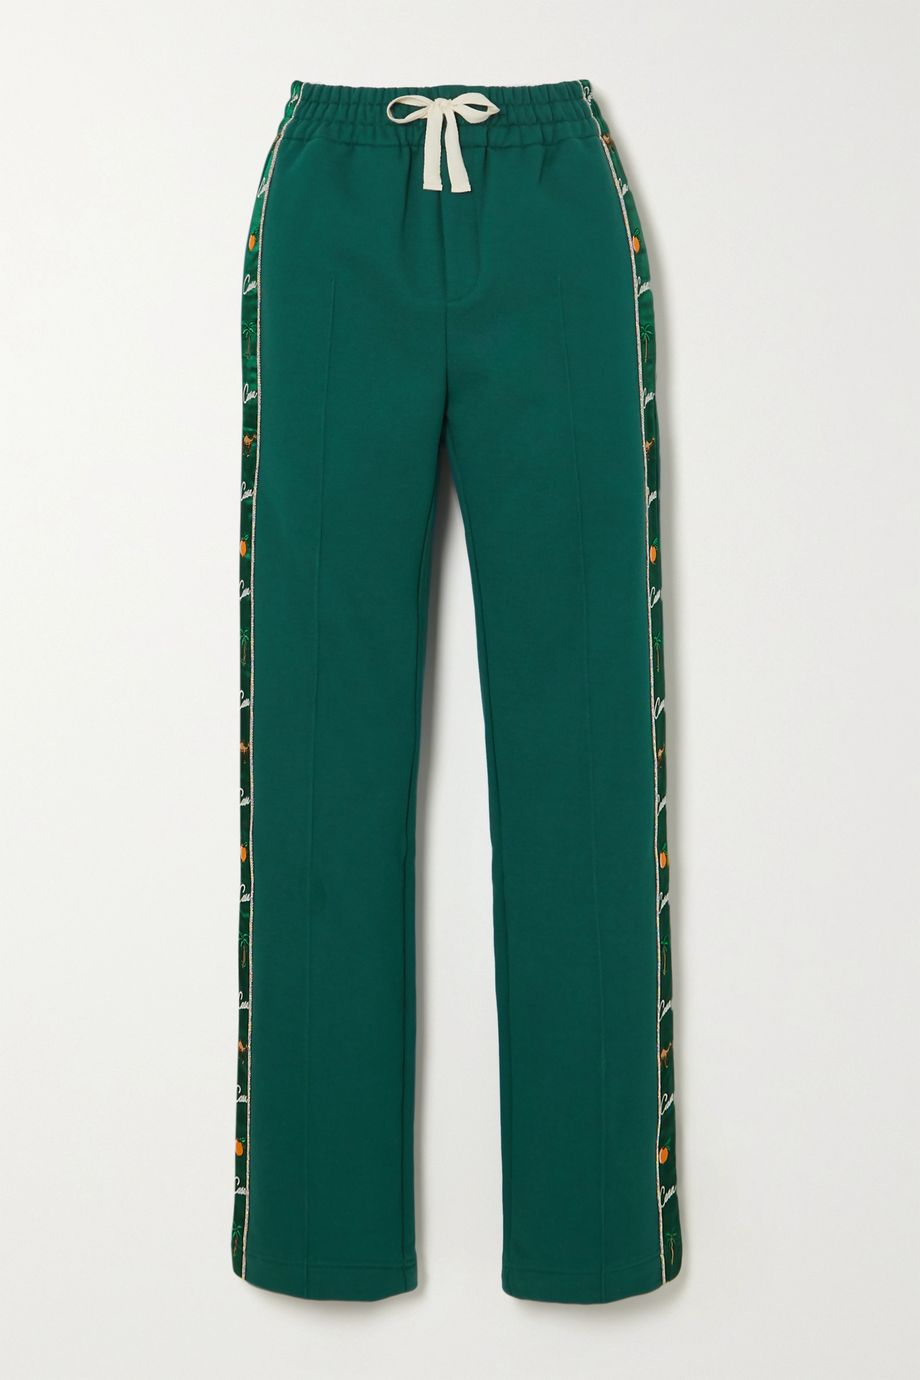 Casablanca Apres Mer embroidered satin-trimmed cotton-jersey track pants